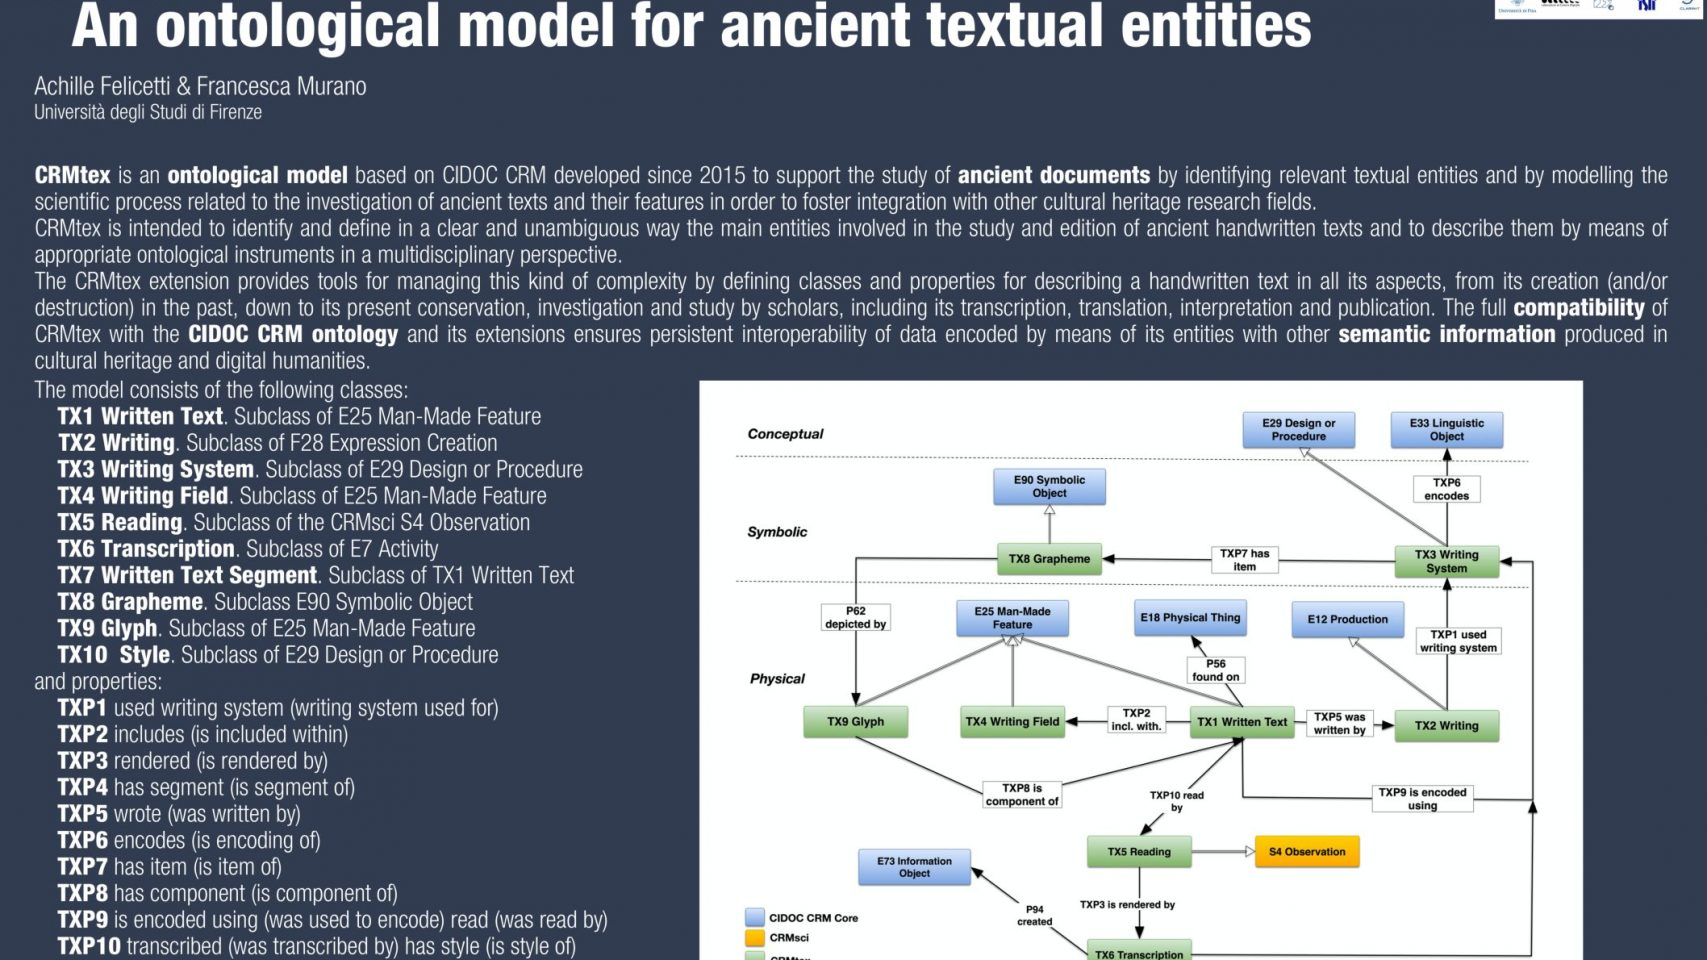 Achille Felicetti and Francesca Murano - CRMtex. An ontological model for ancient textual entities